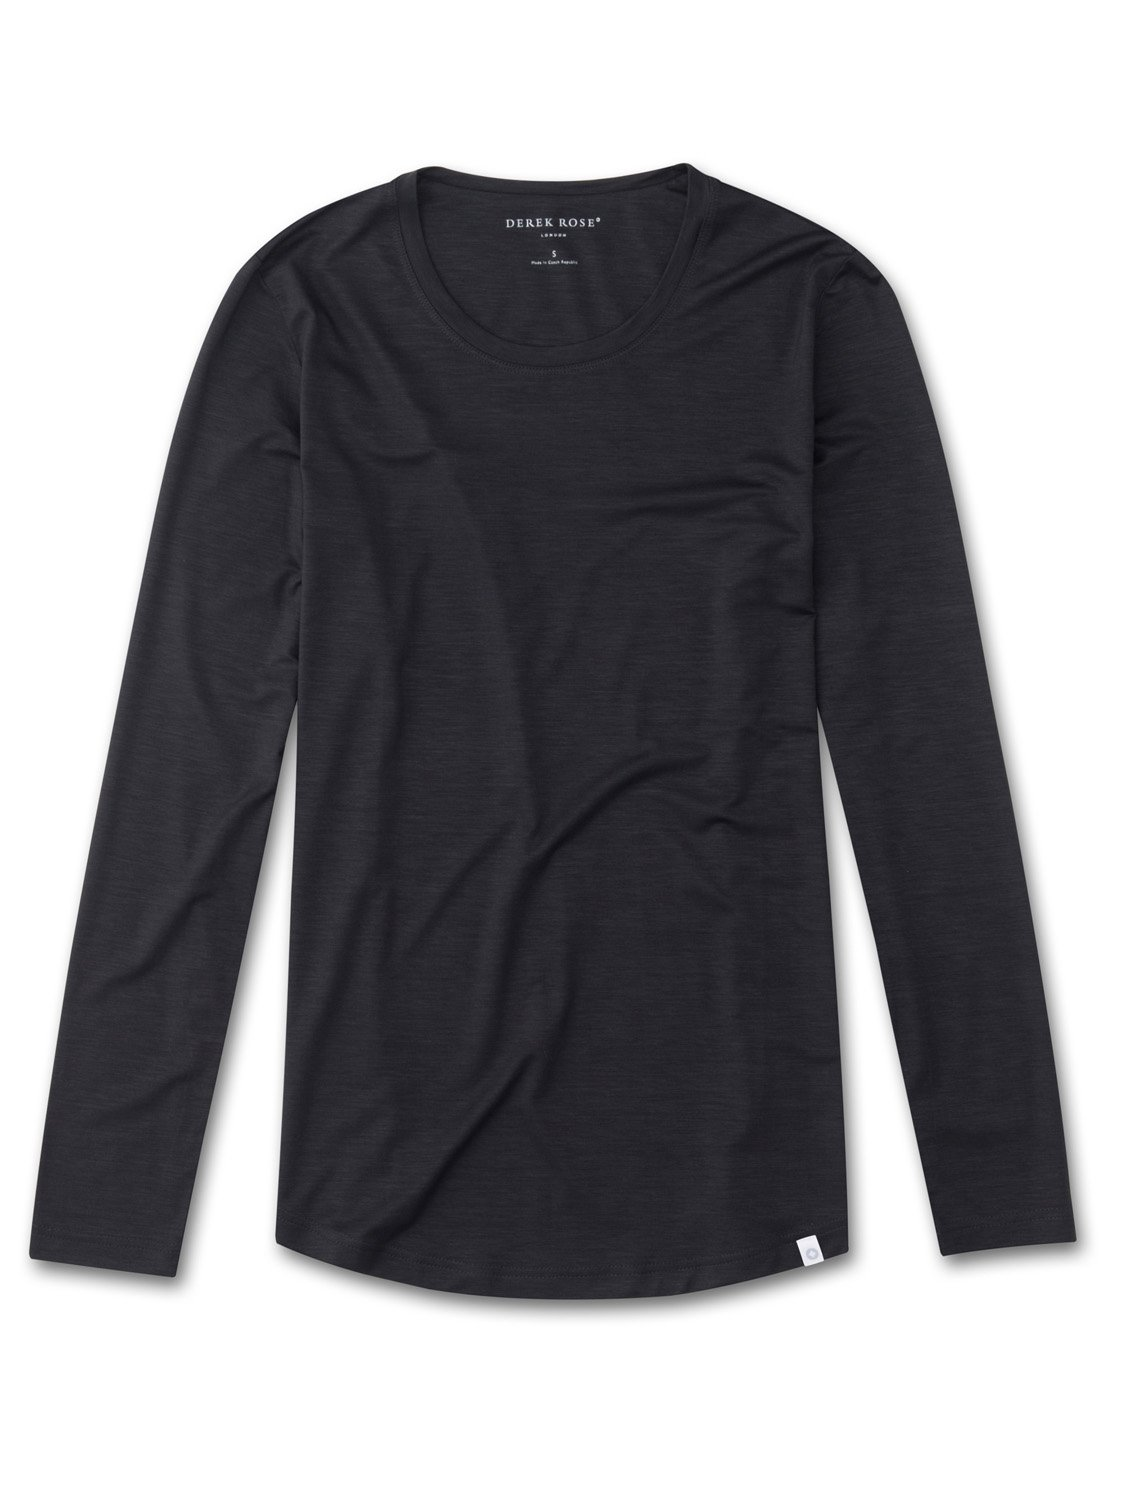 Women's Long Sleeve T-Shirt Carla Micro Modal Stretch Charcoal